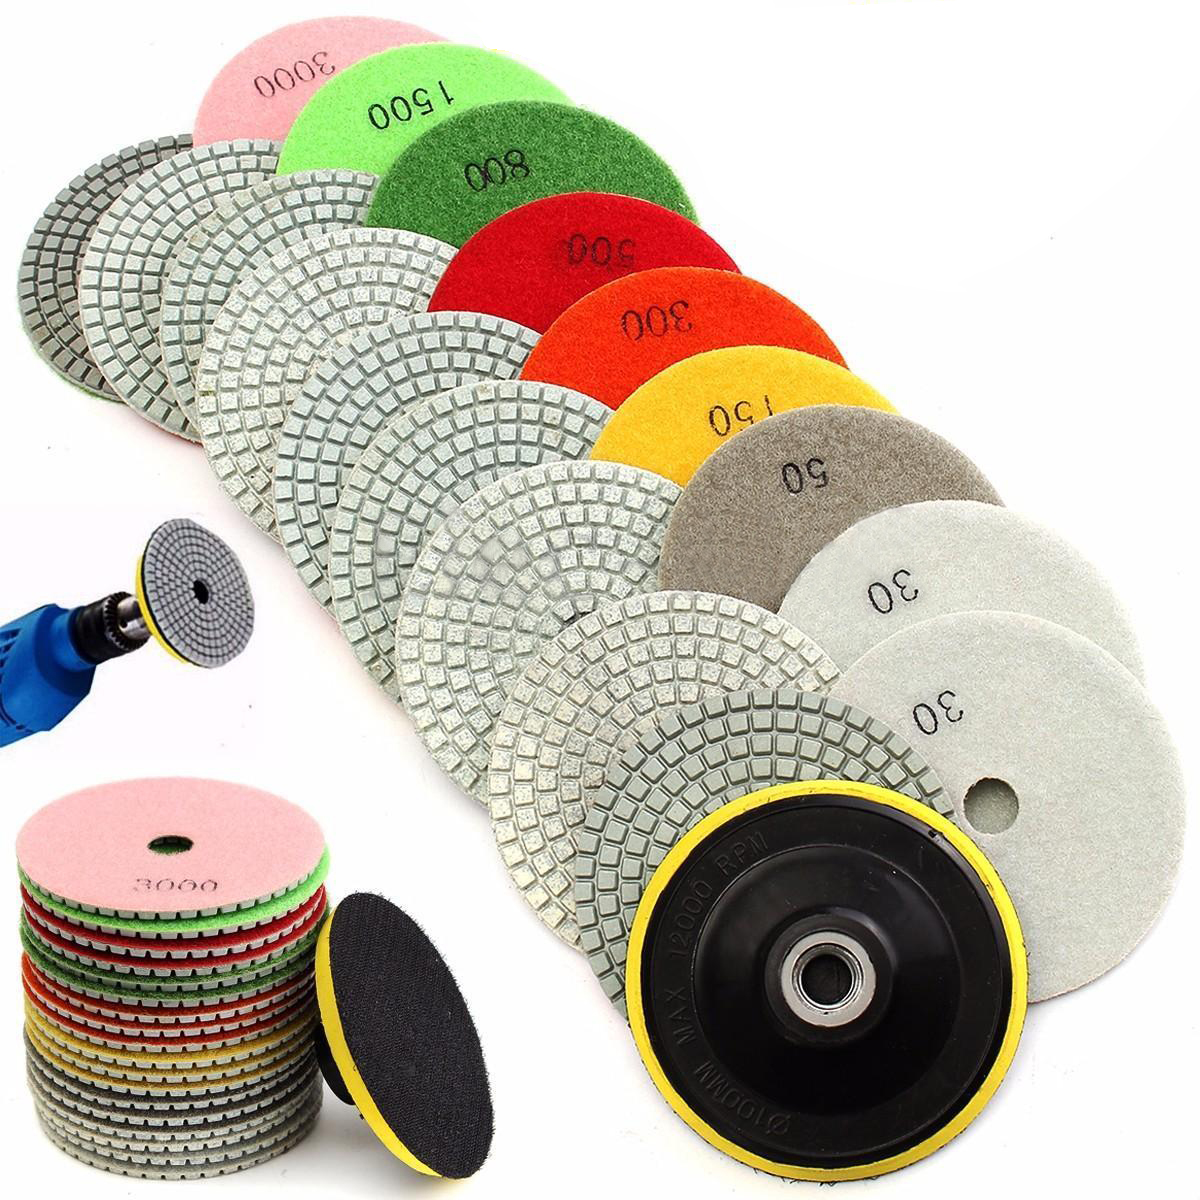 19pcs 4inch Wet/Dry Diamond Polishing Pads For Granite Marble Concrete Stone Polishing Tools